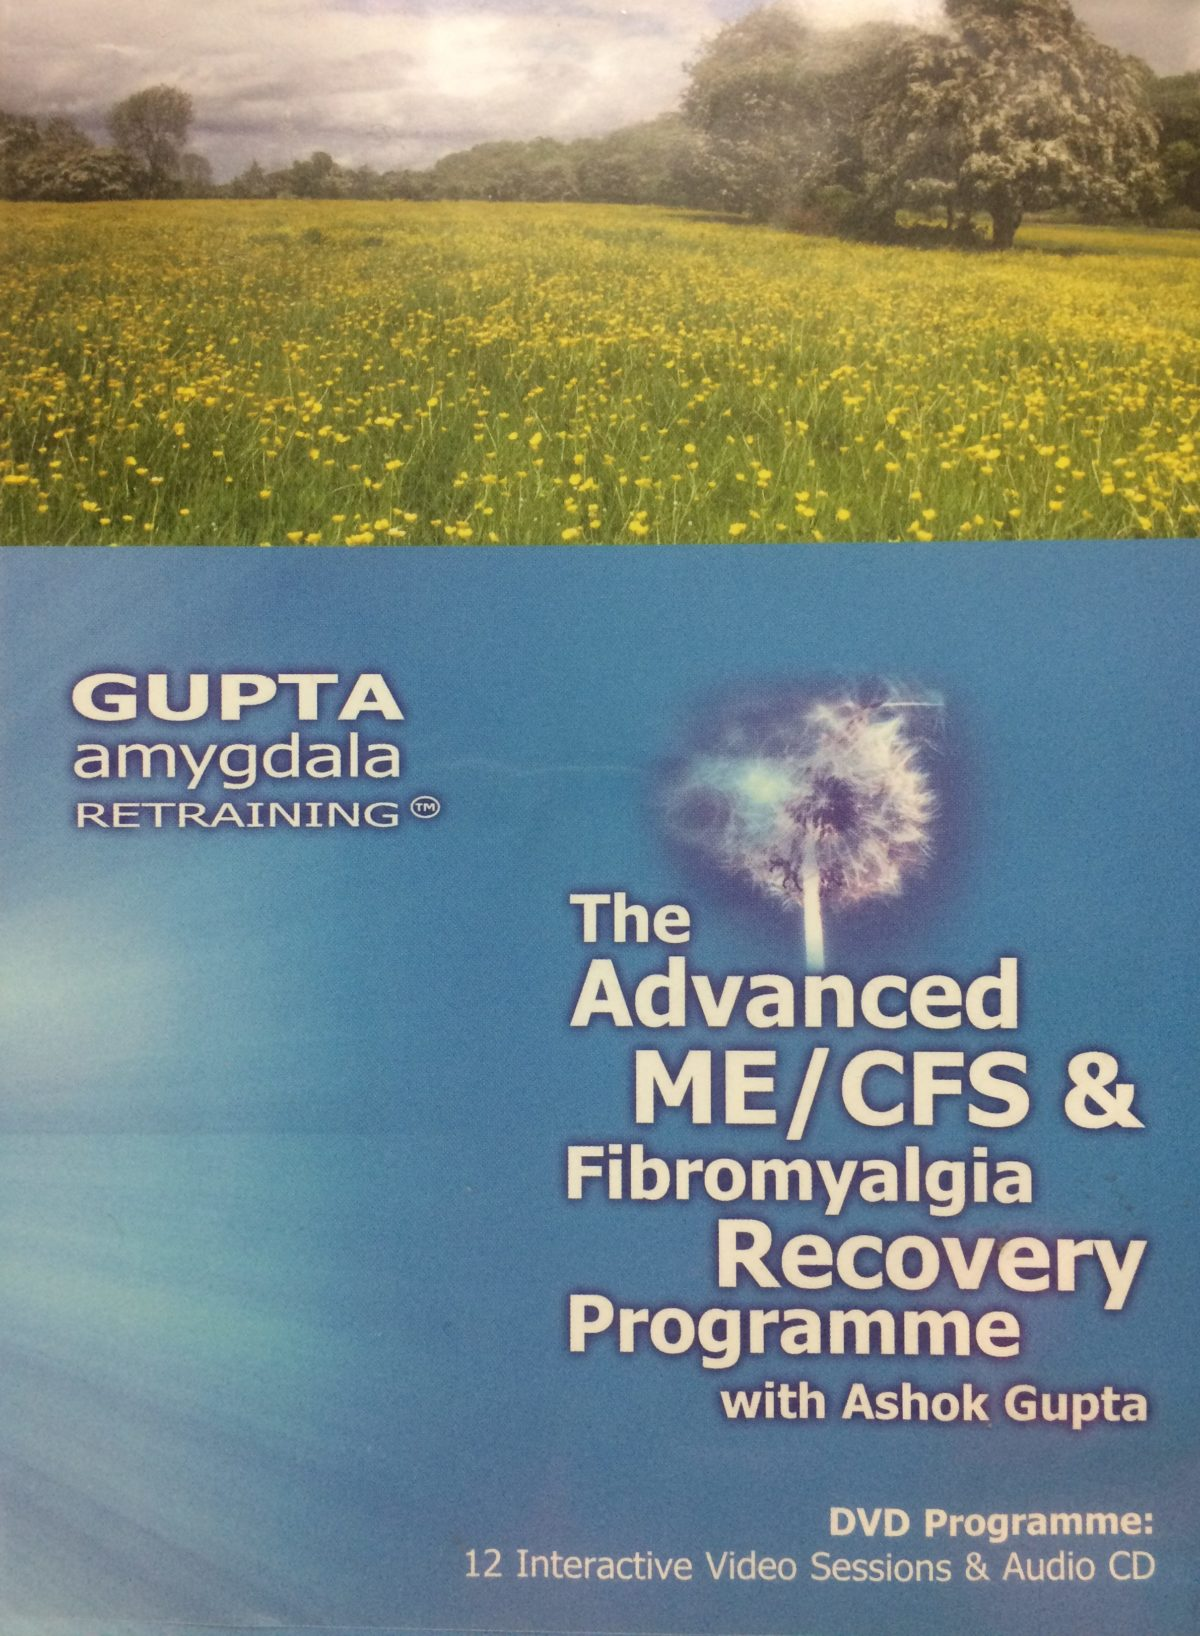 Where I'm At With Gupta's Amygdala Retraining Program